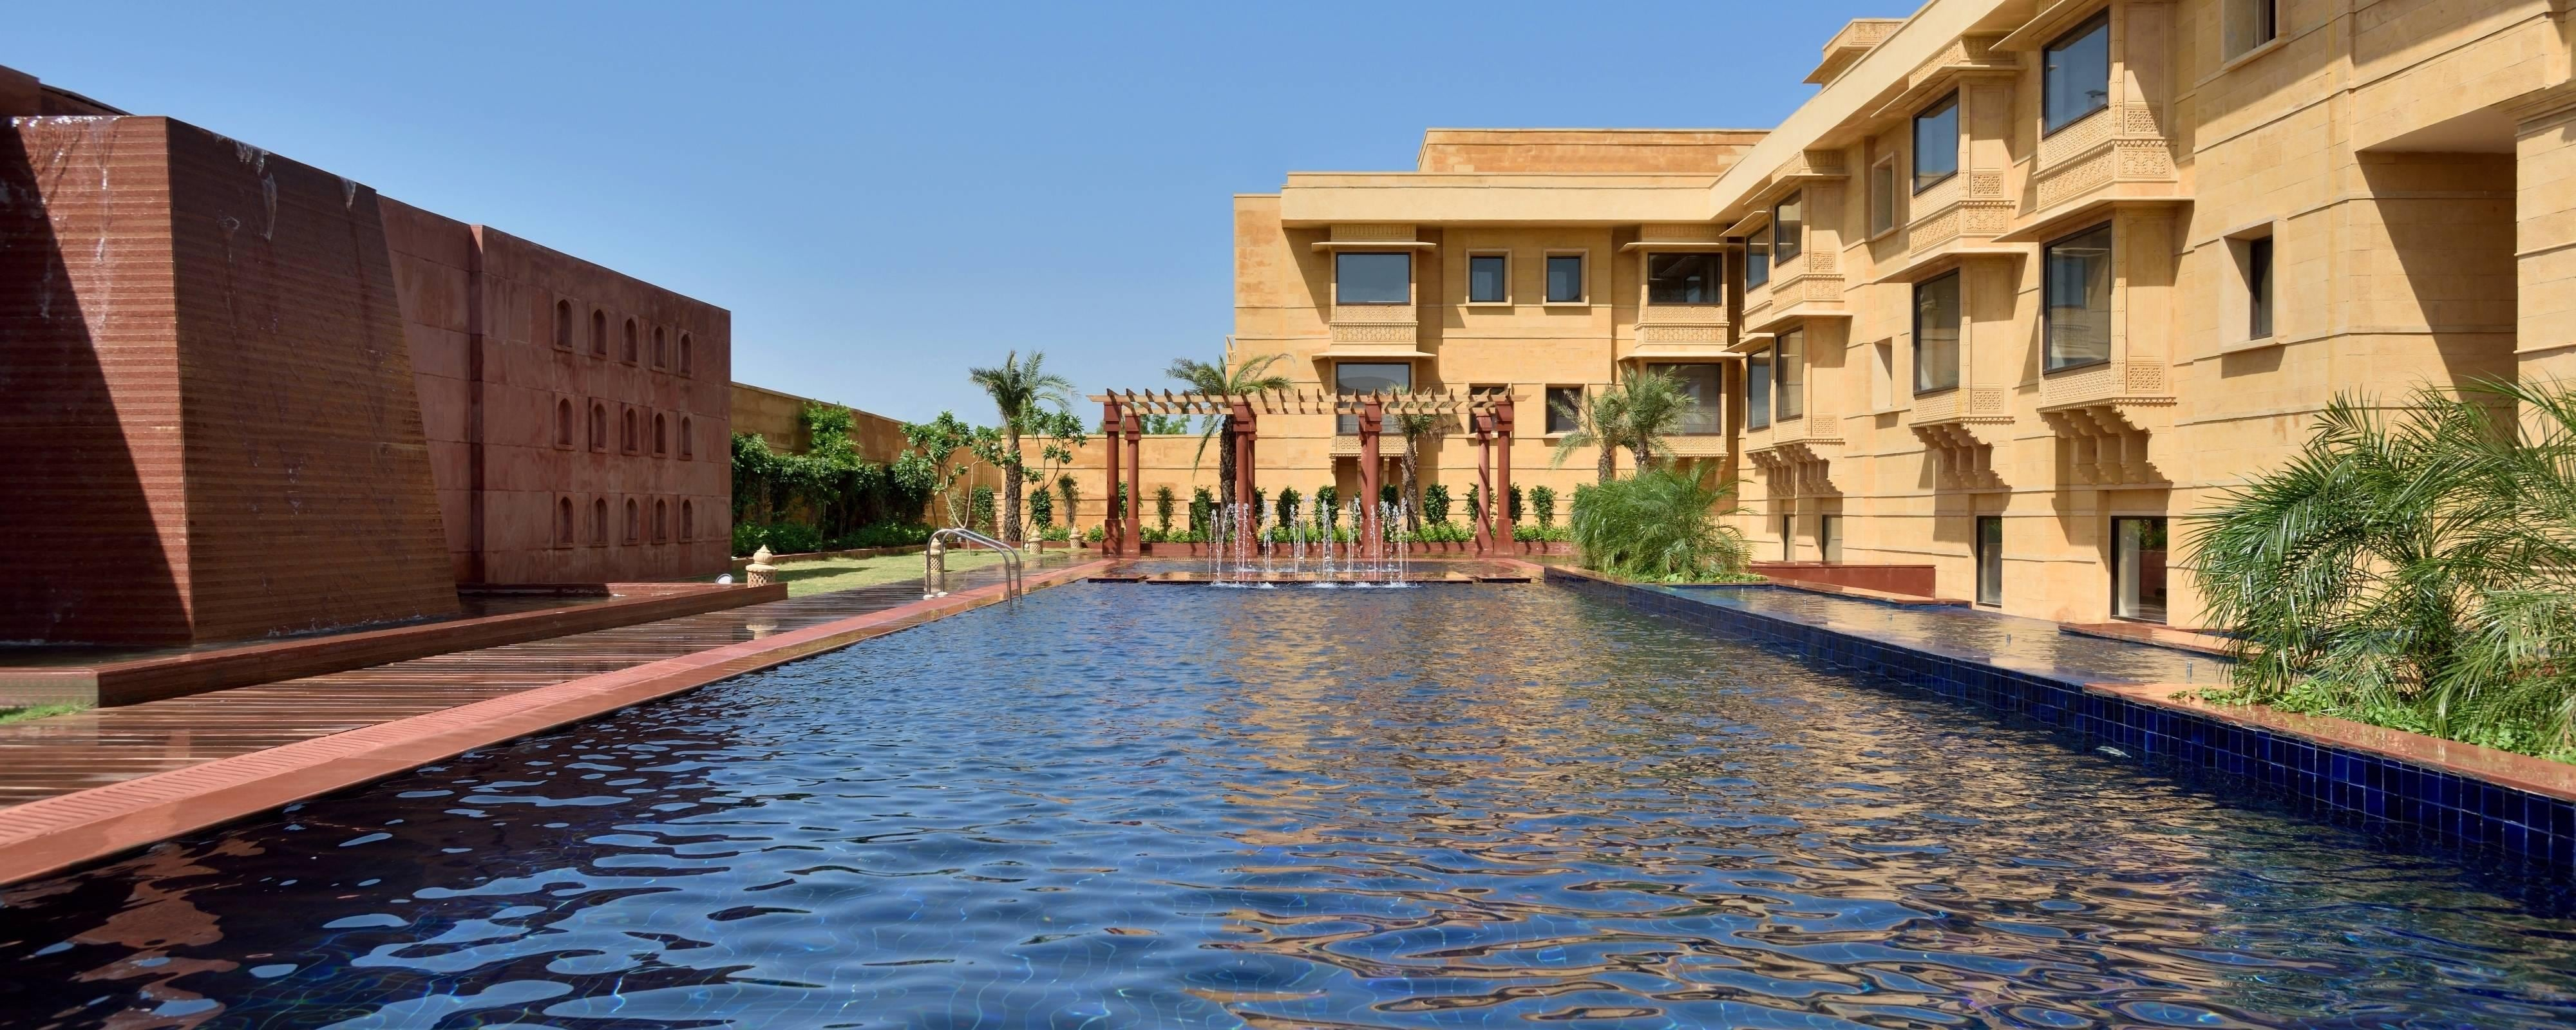 Jaisalmer fitness center hotels with swimming pool hotels - Jaisalmer hotels with swimming pool ...